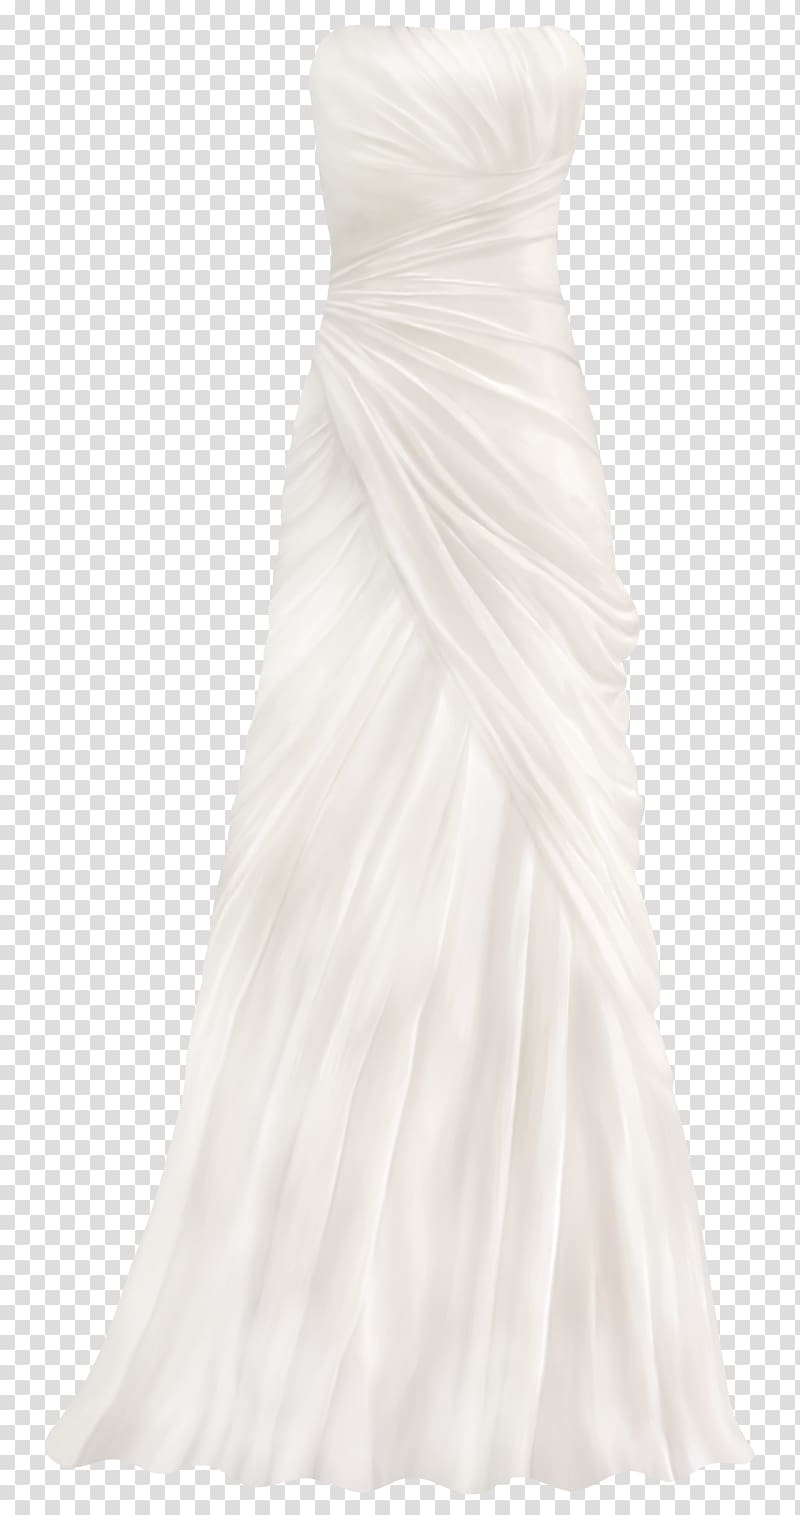 Wedding dress Clothing Gown Bridesmaid, dress transparent.